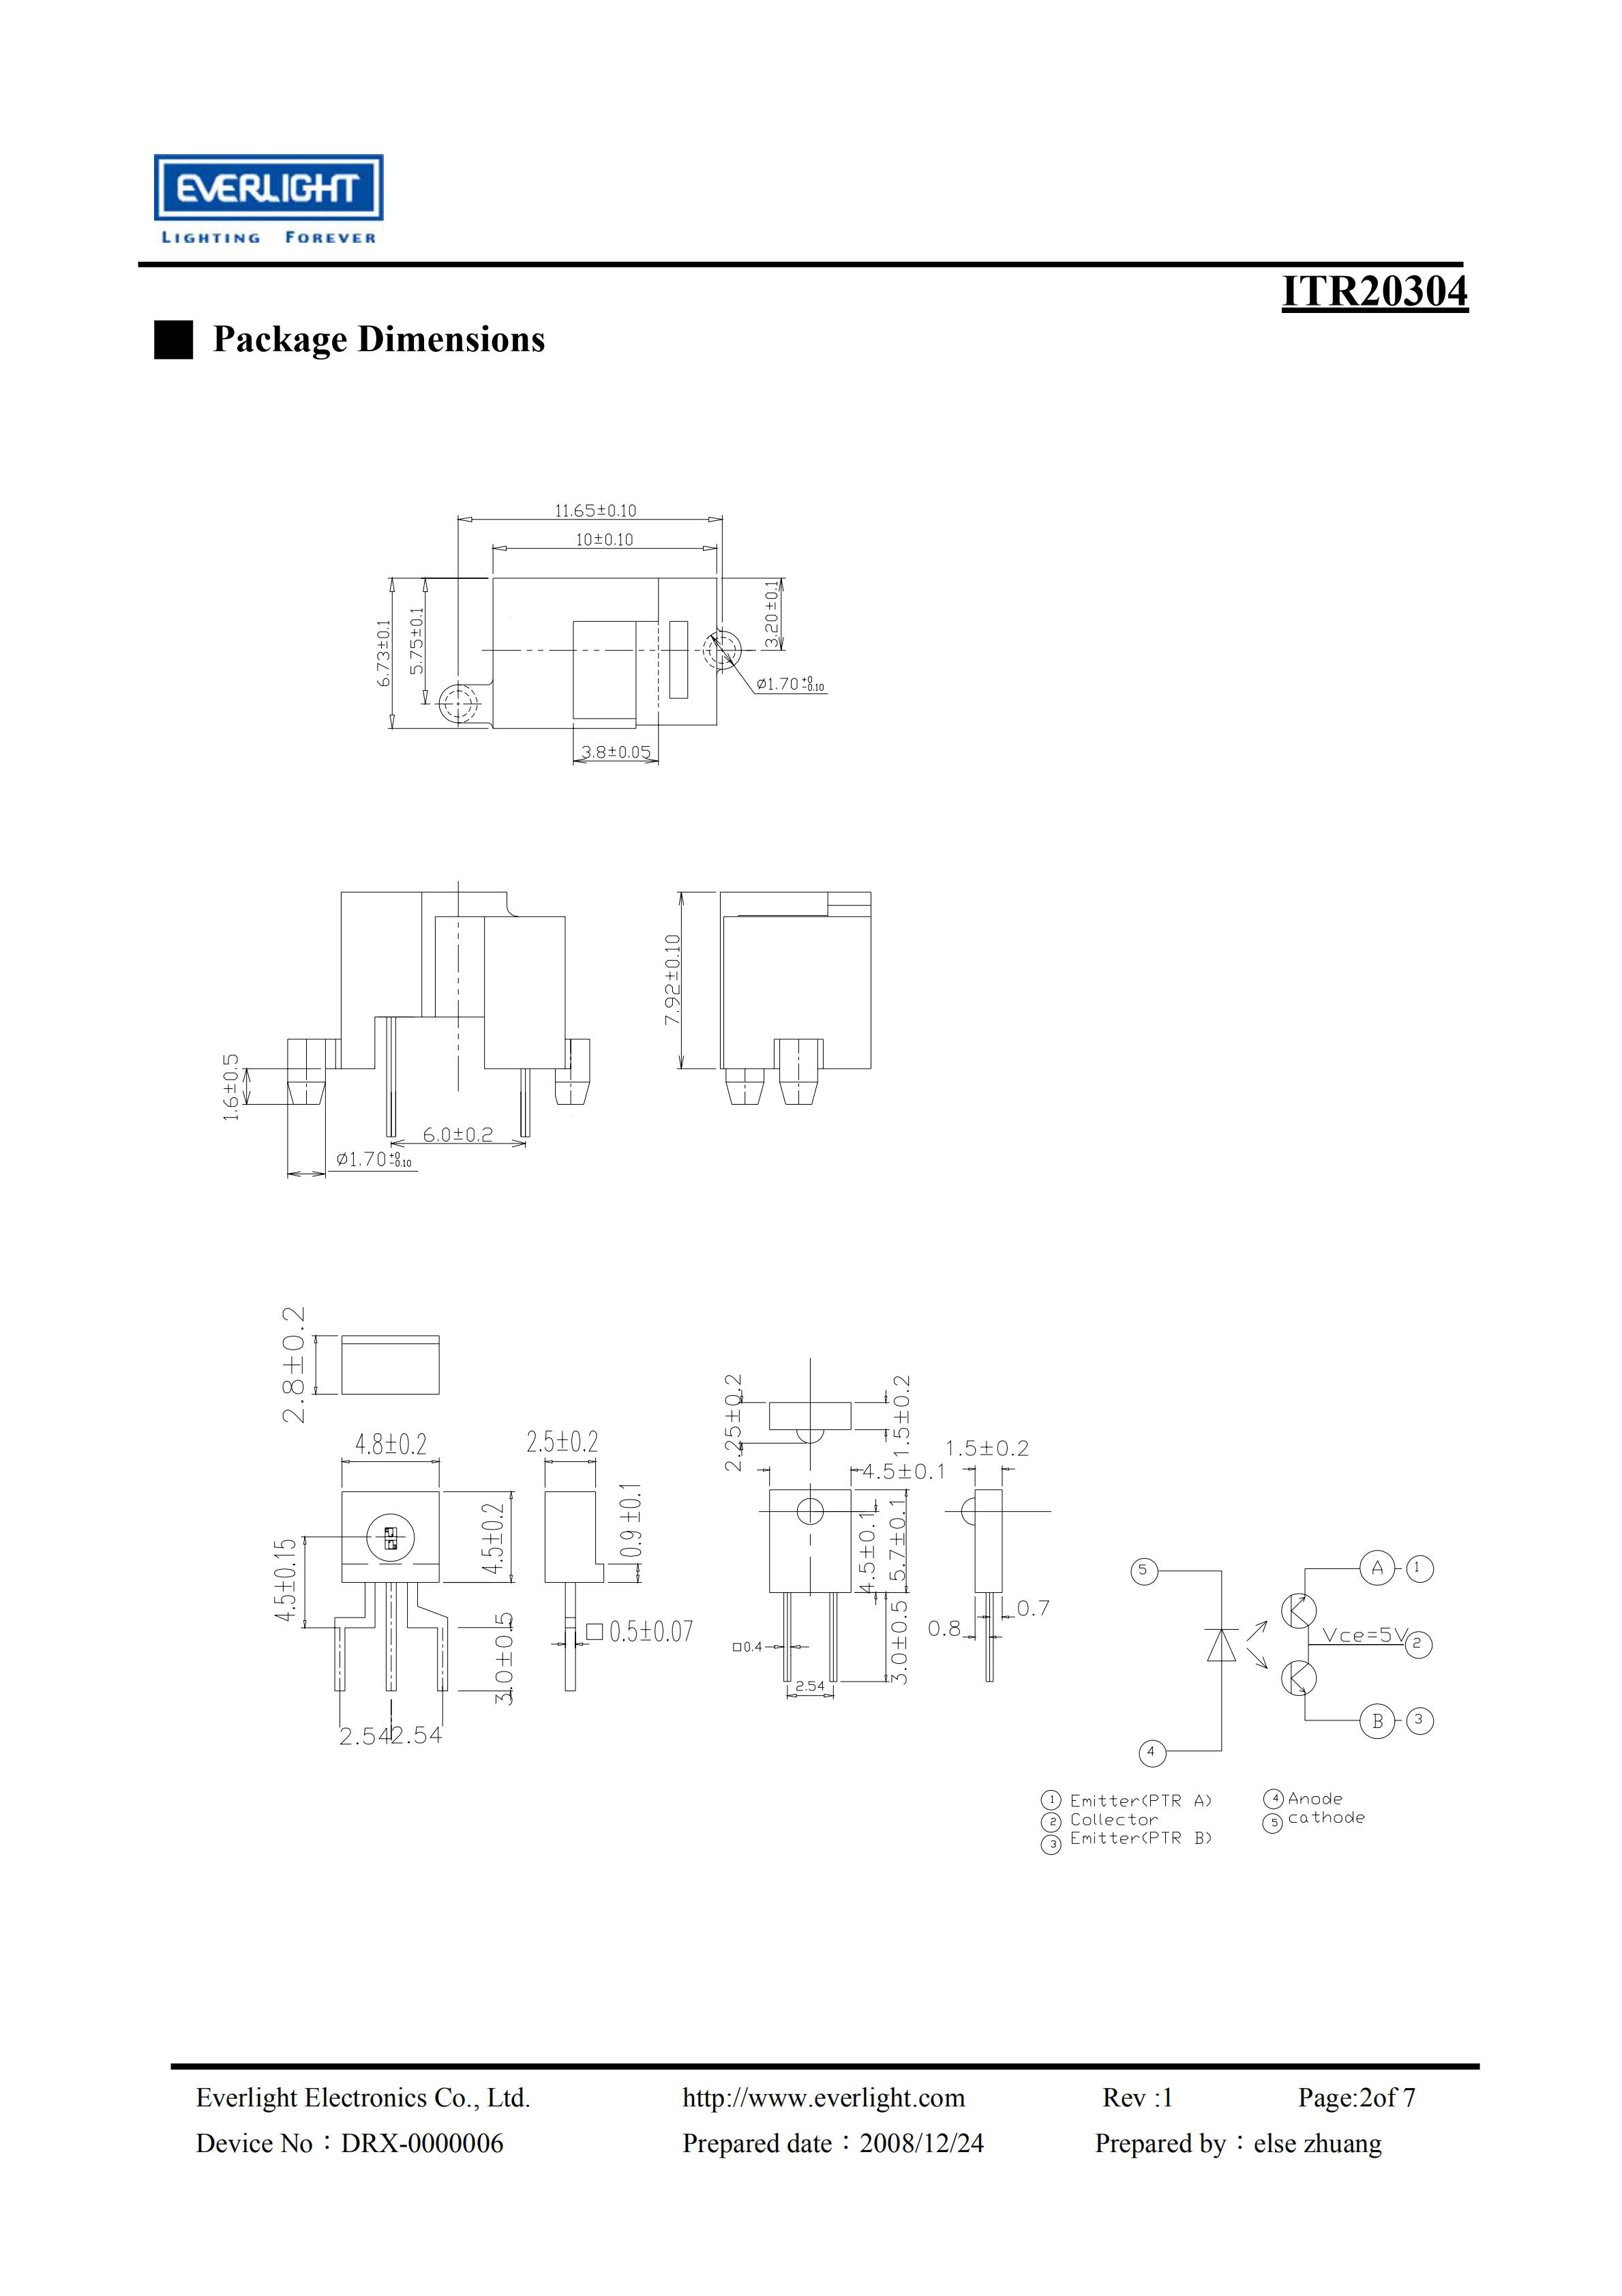 EVERLIGHT Optical Switch ITR20304 Opto Interrupter Datasheet